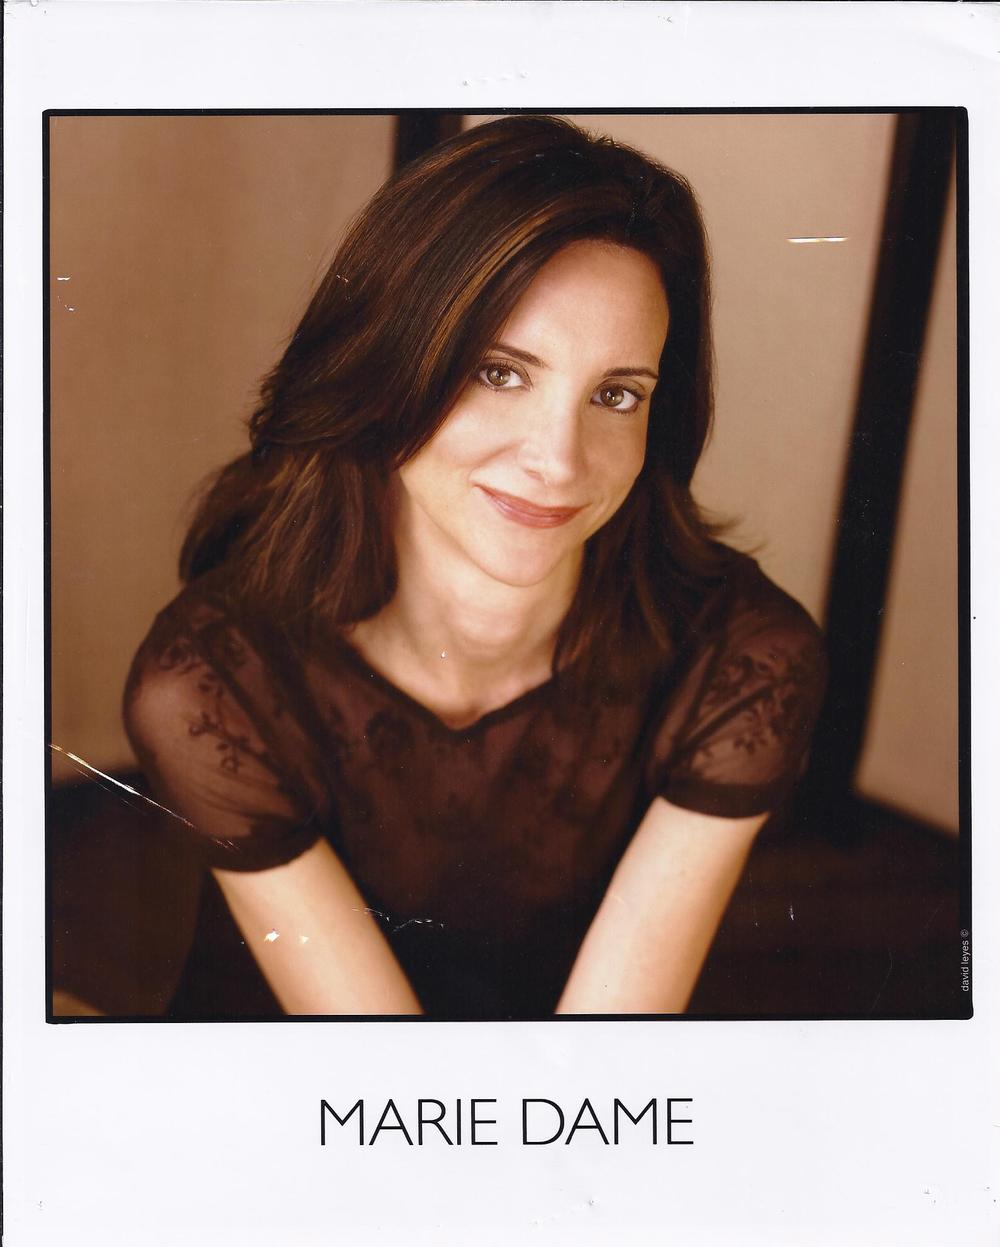 Marie Dame